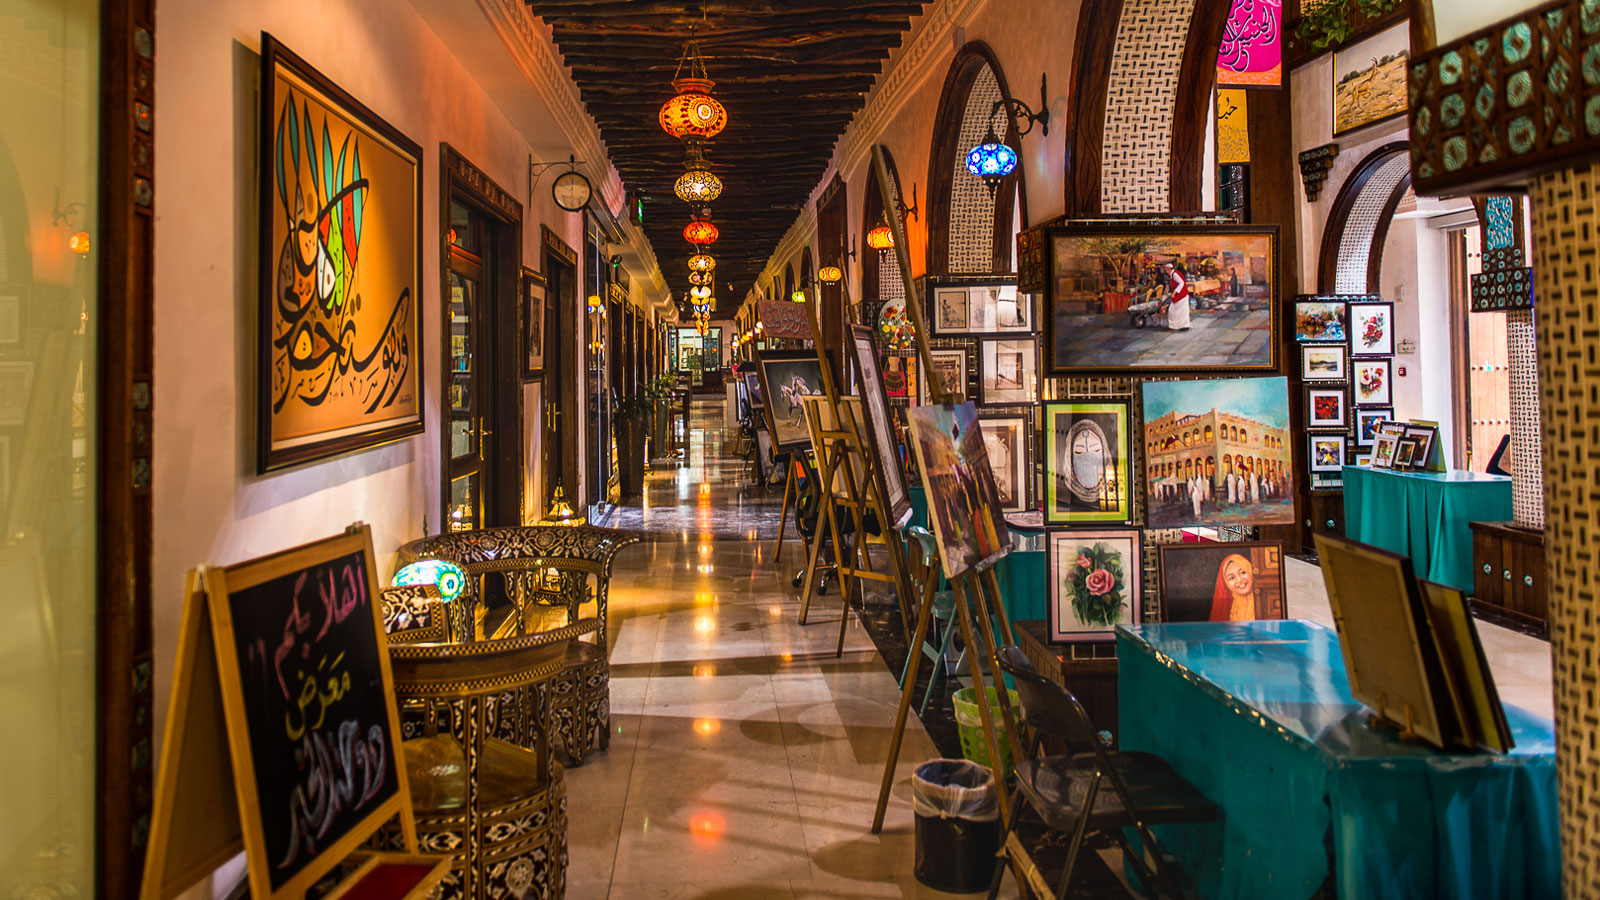 Souq Waqif: 10 things to do at old market in Doha, Qatar